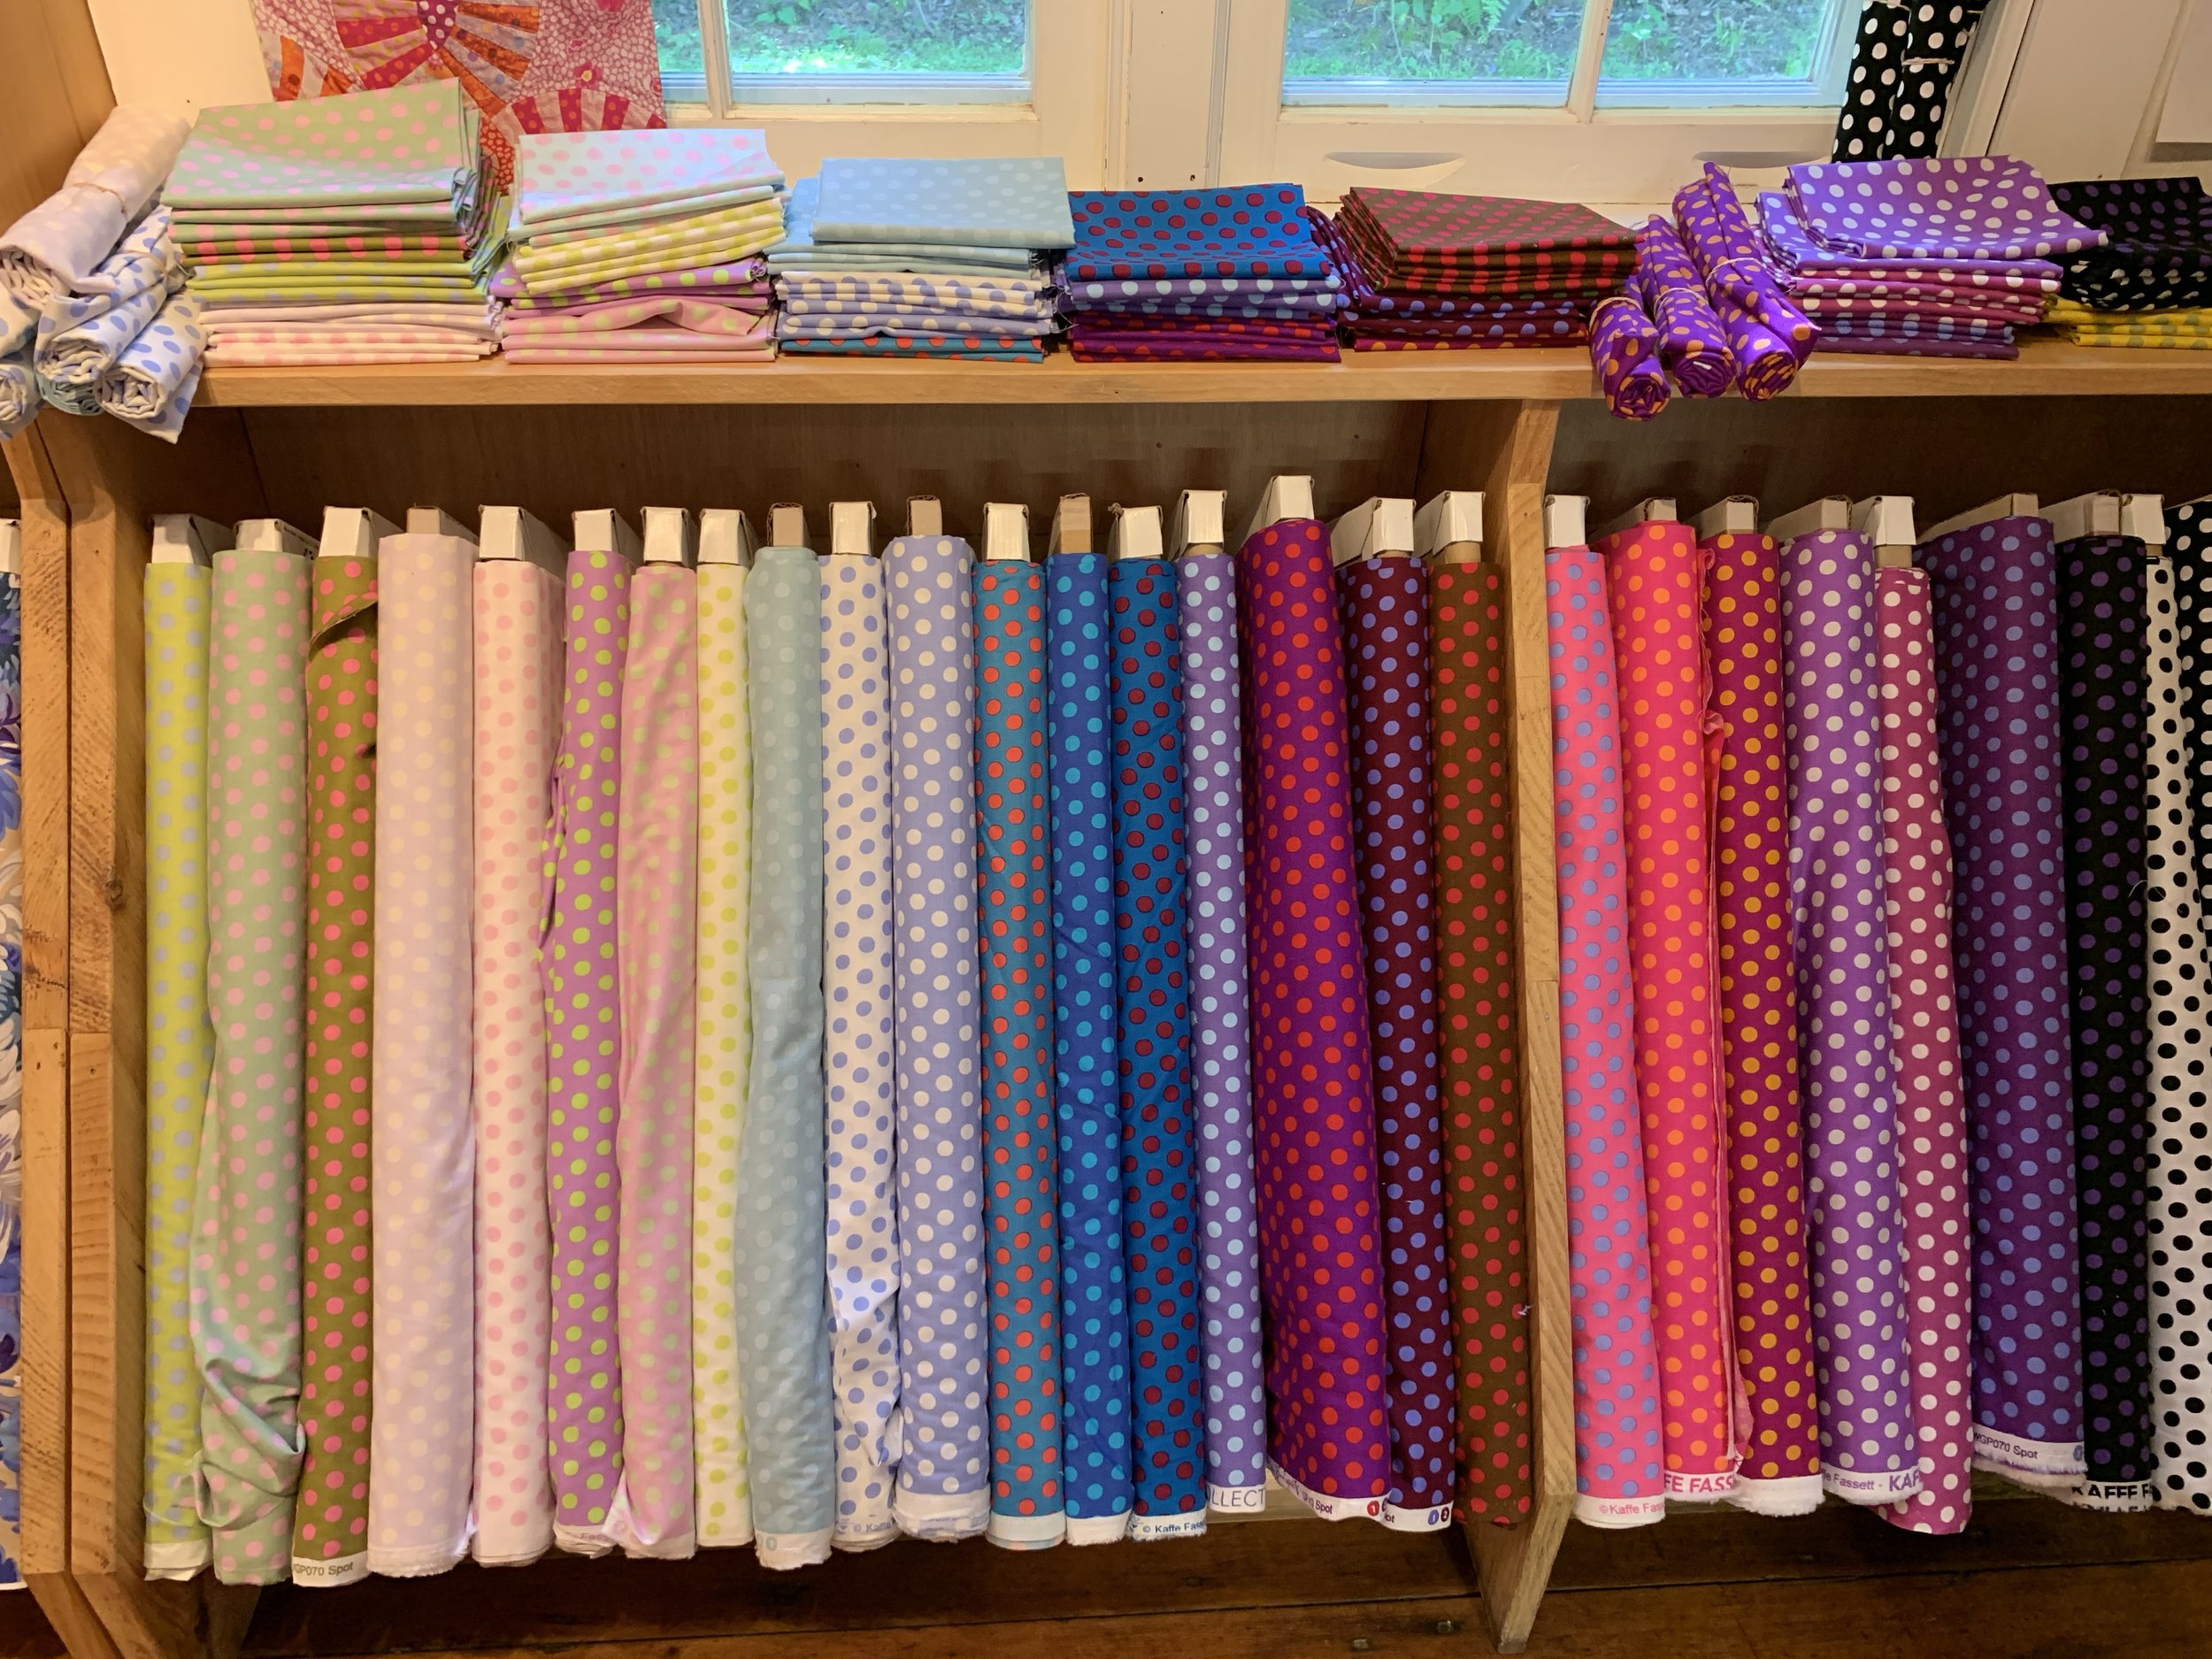 More colorful fabrics at quilt shop